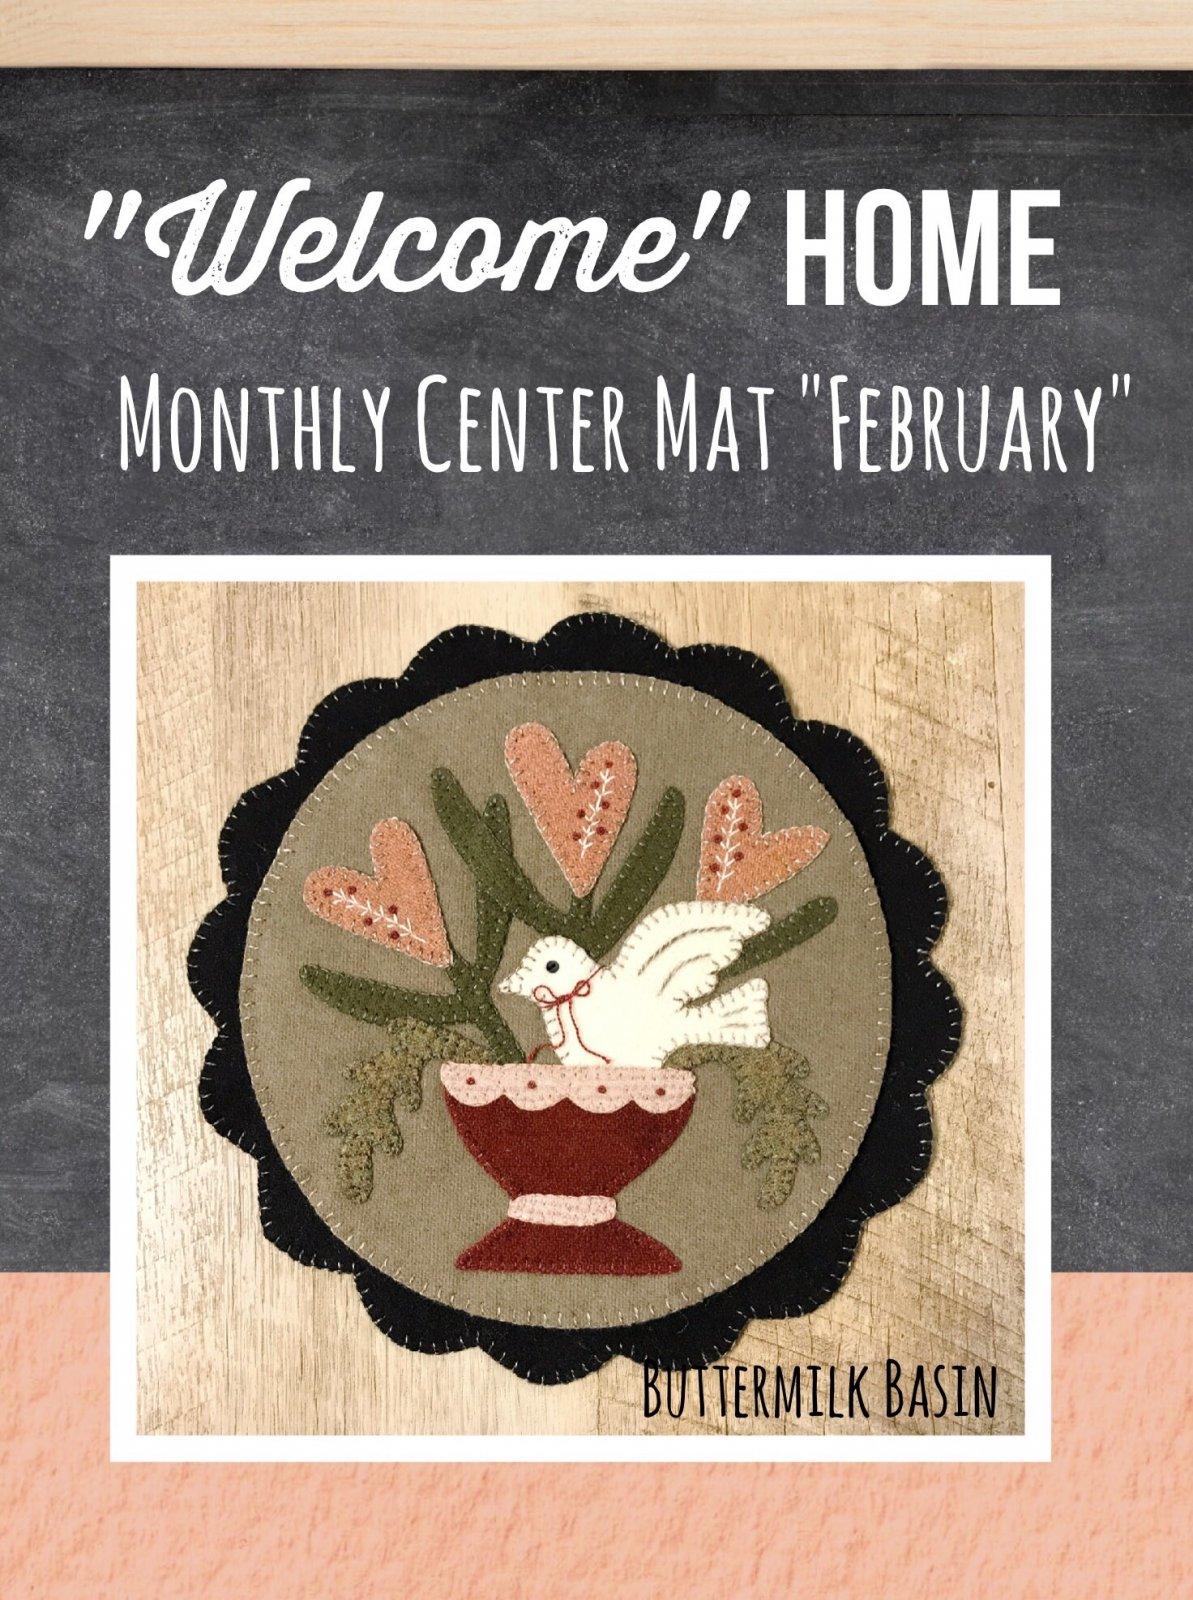 Welcome HOME February Center Circle PATTERN